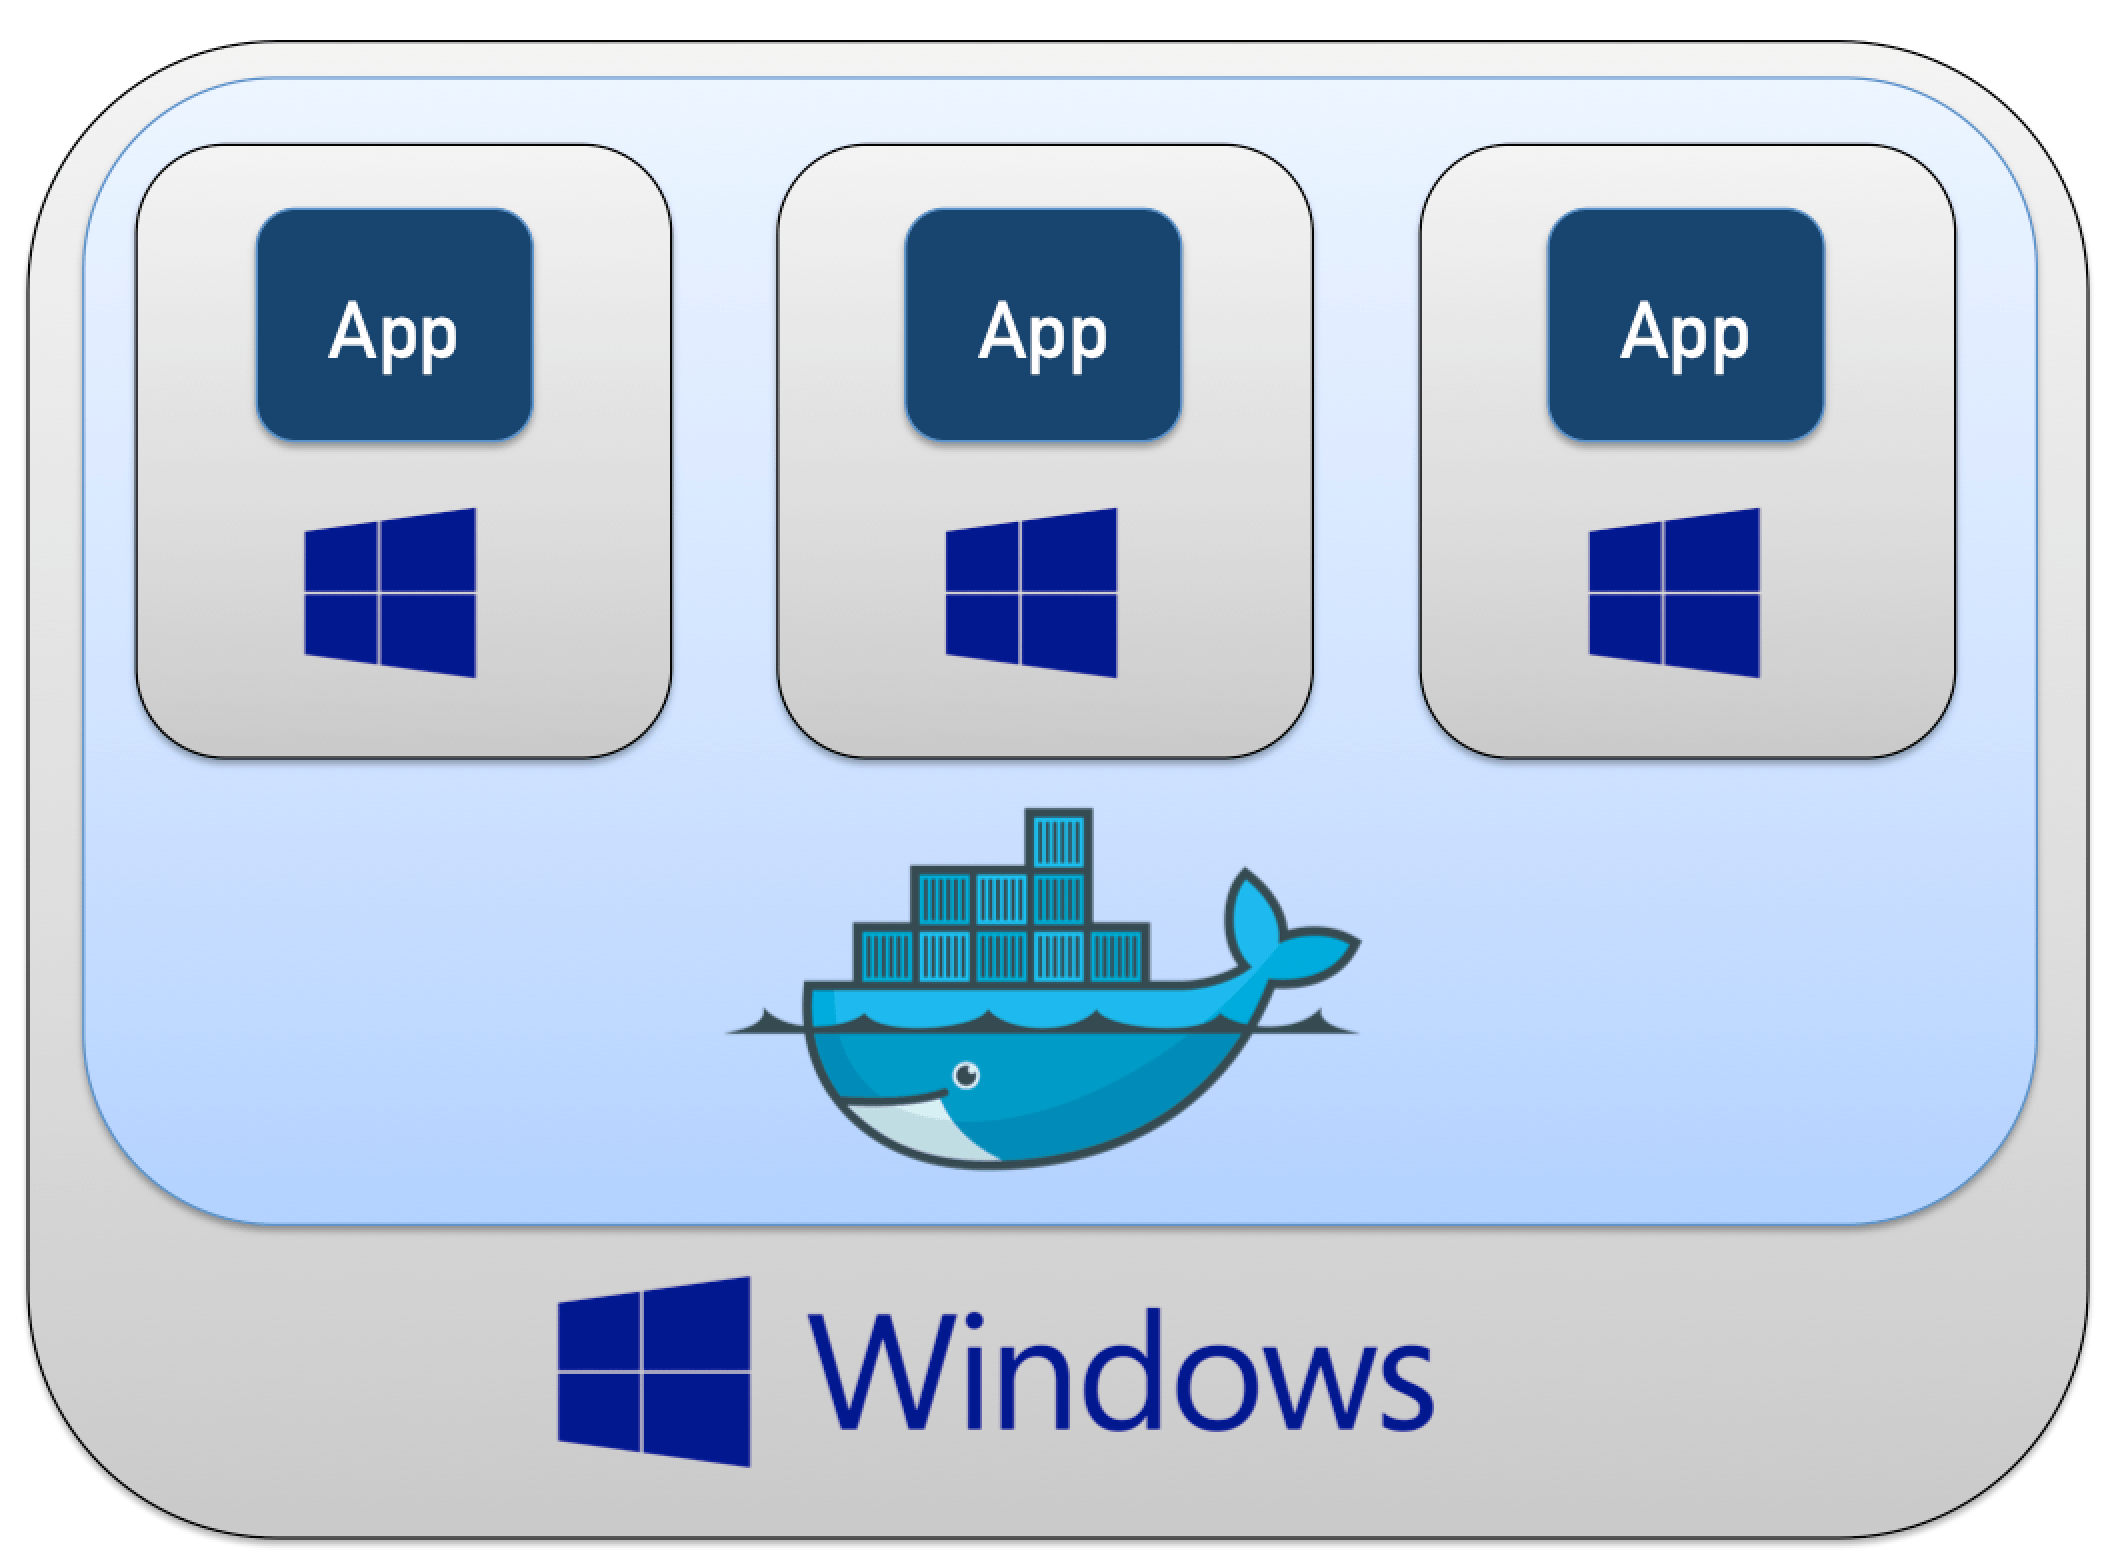 Running Spring Boot Apps on Docker Windows Containers with Ansible